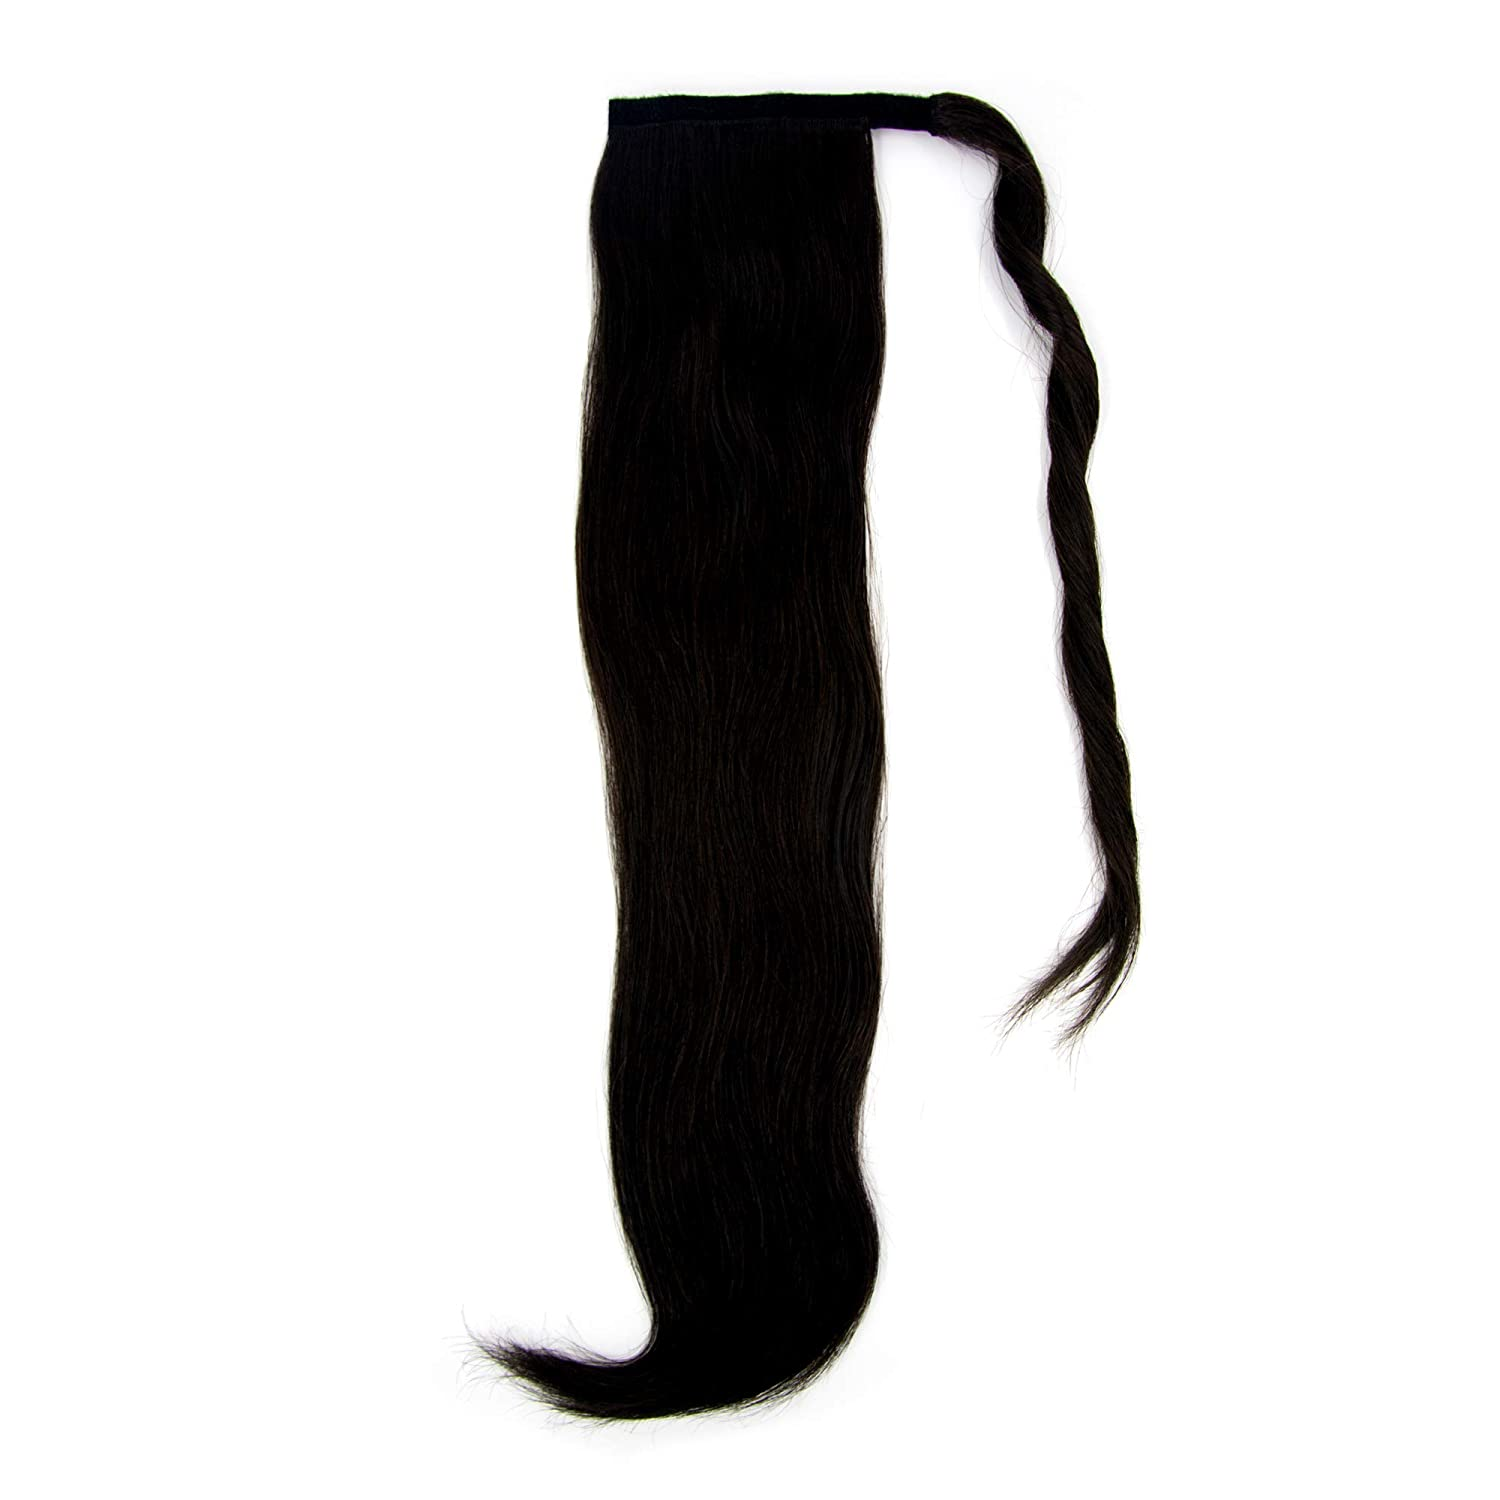 5% OFF HAIR COUTURE AVANTI 100% Human Quantity limited Remy Wrap Extension 18